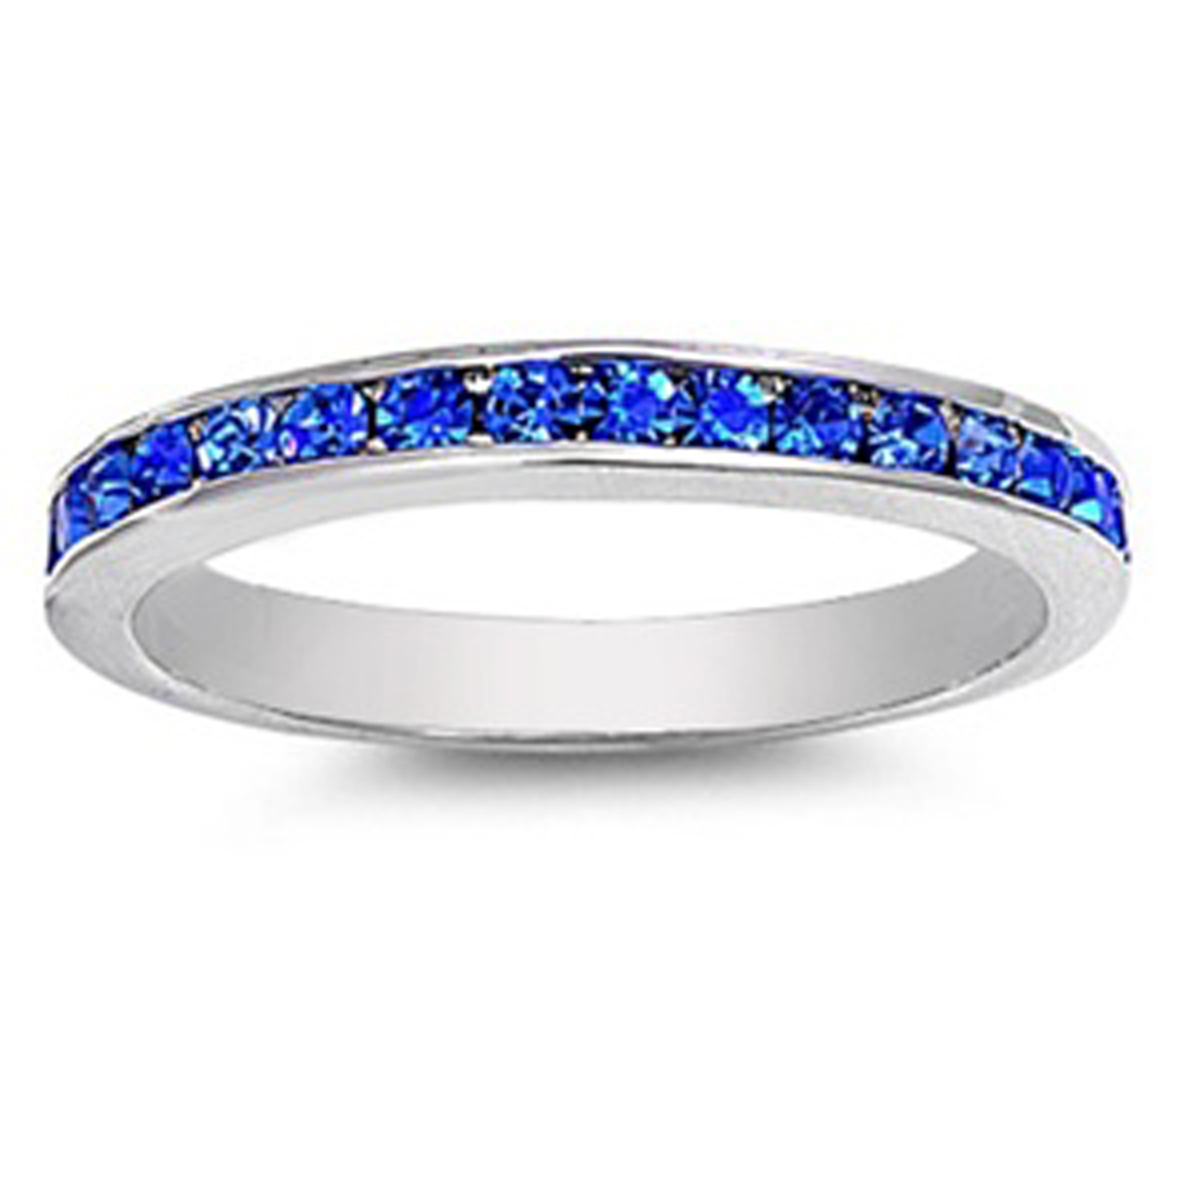 Sterling Silver Women's Flawless Blue Cubic Zirconia Wedding Eternity Ring (Sizes 3-12) (Ring Size 6)